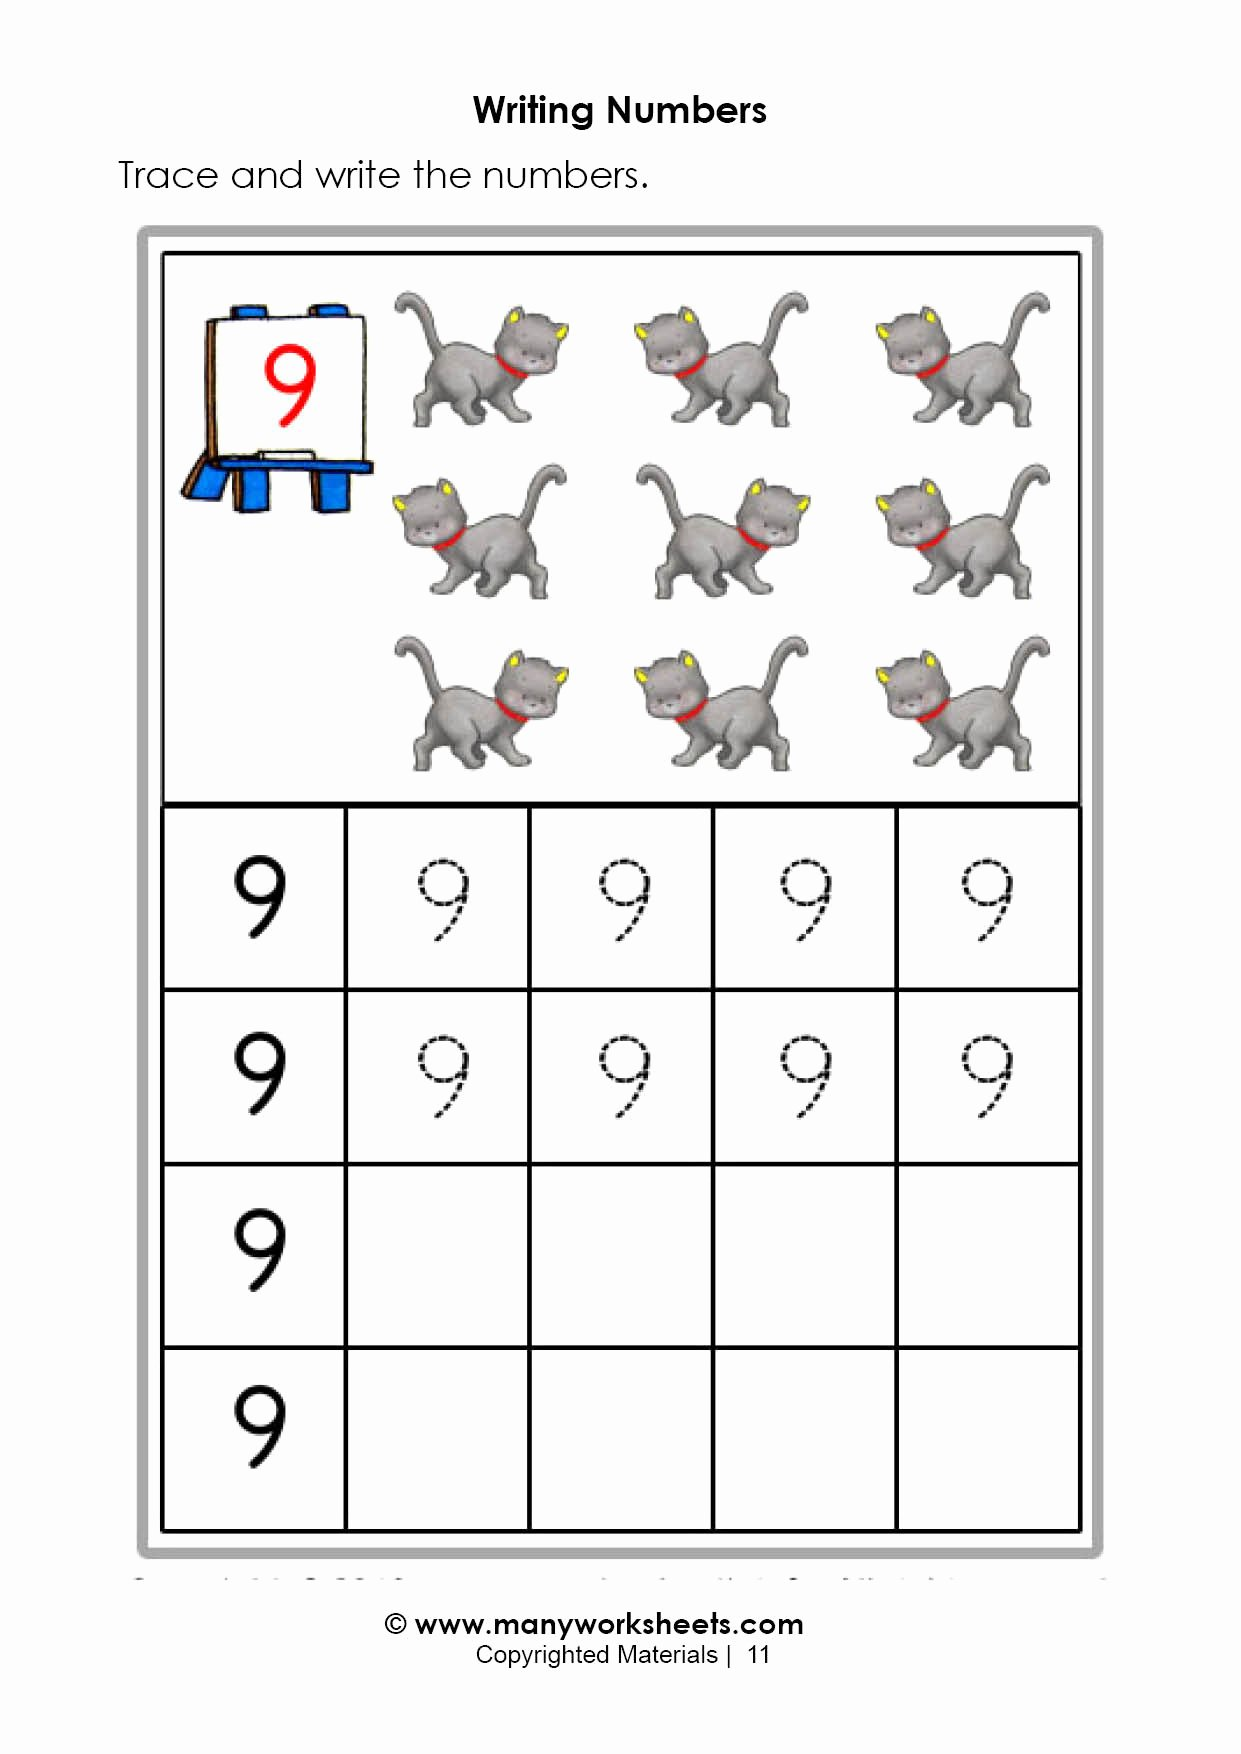 Number 9 Worksheets for Preschoolers Best Of Tracing and Writing Number 9